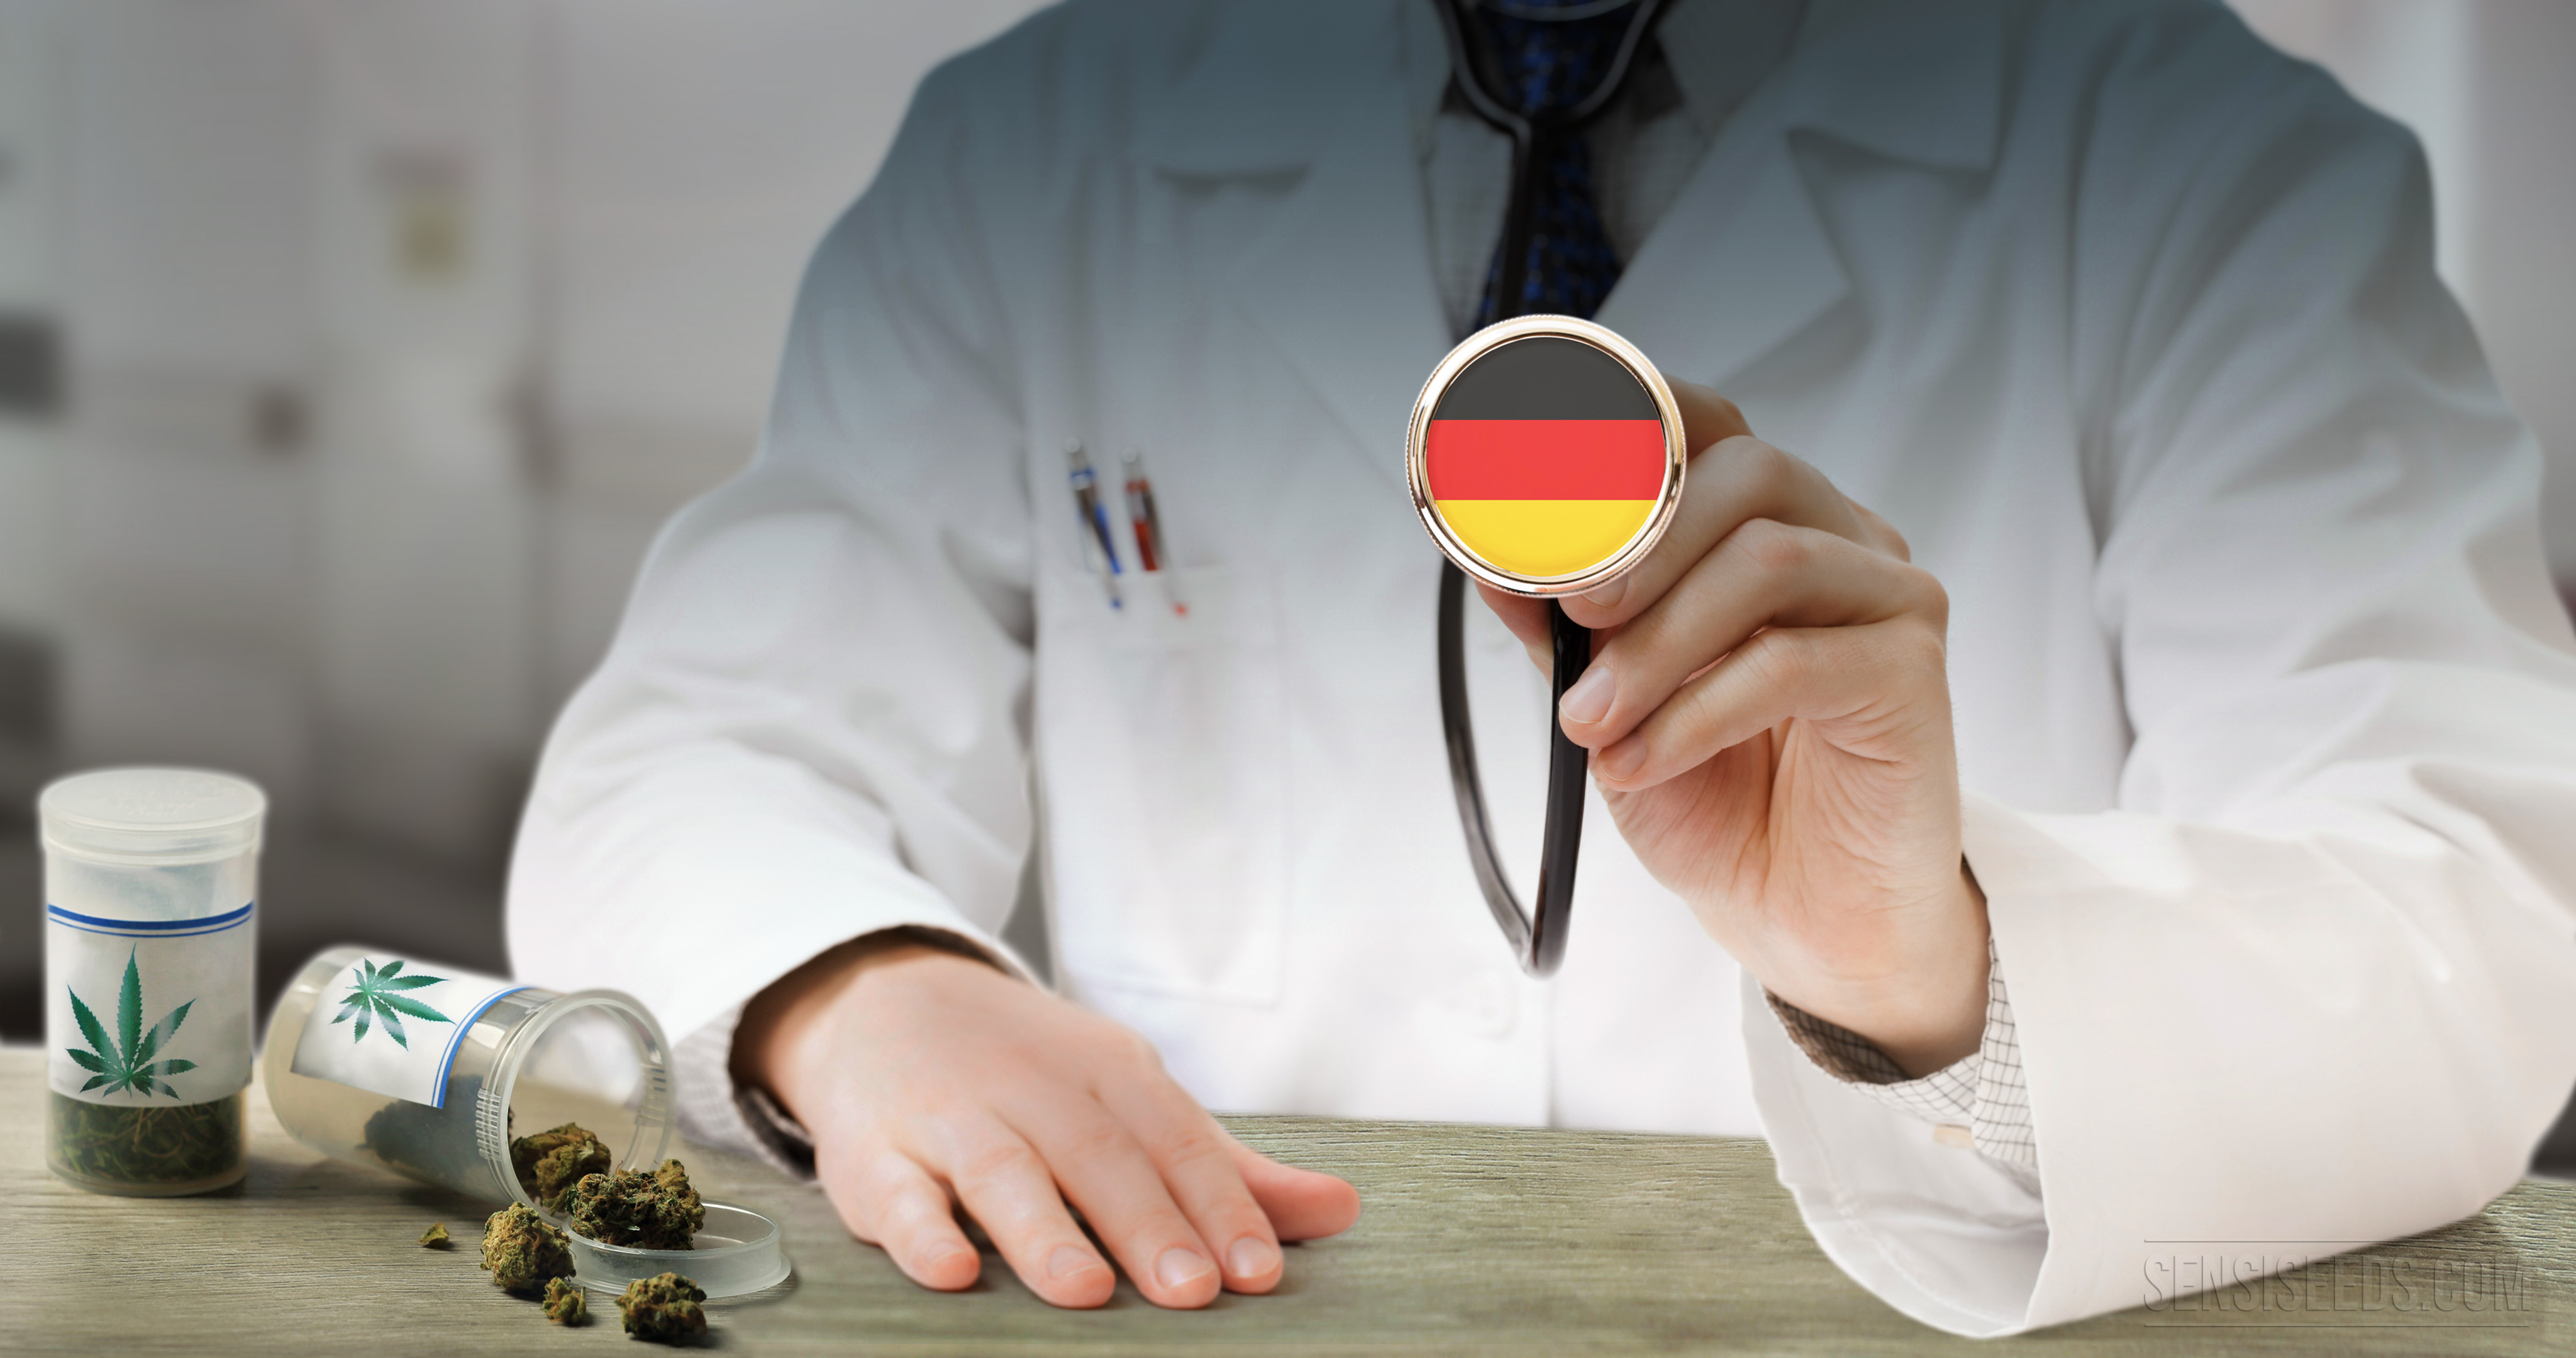 https://herb.co/marijuana/news/germany-prescribing-medical-cannabis